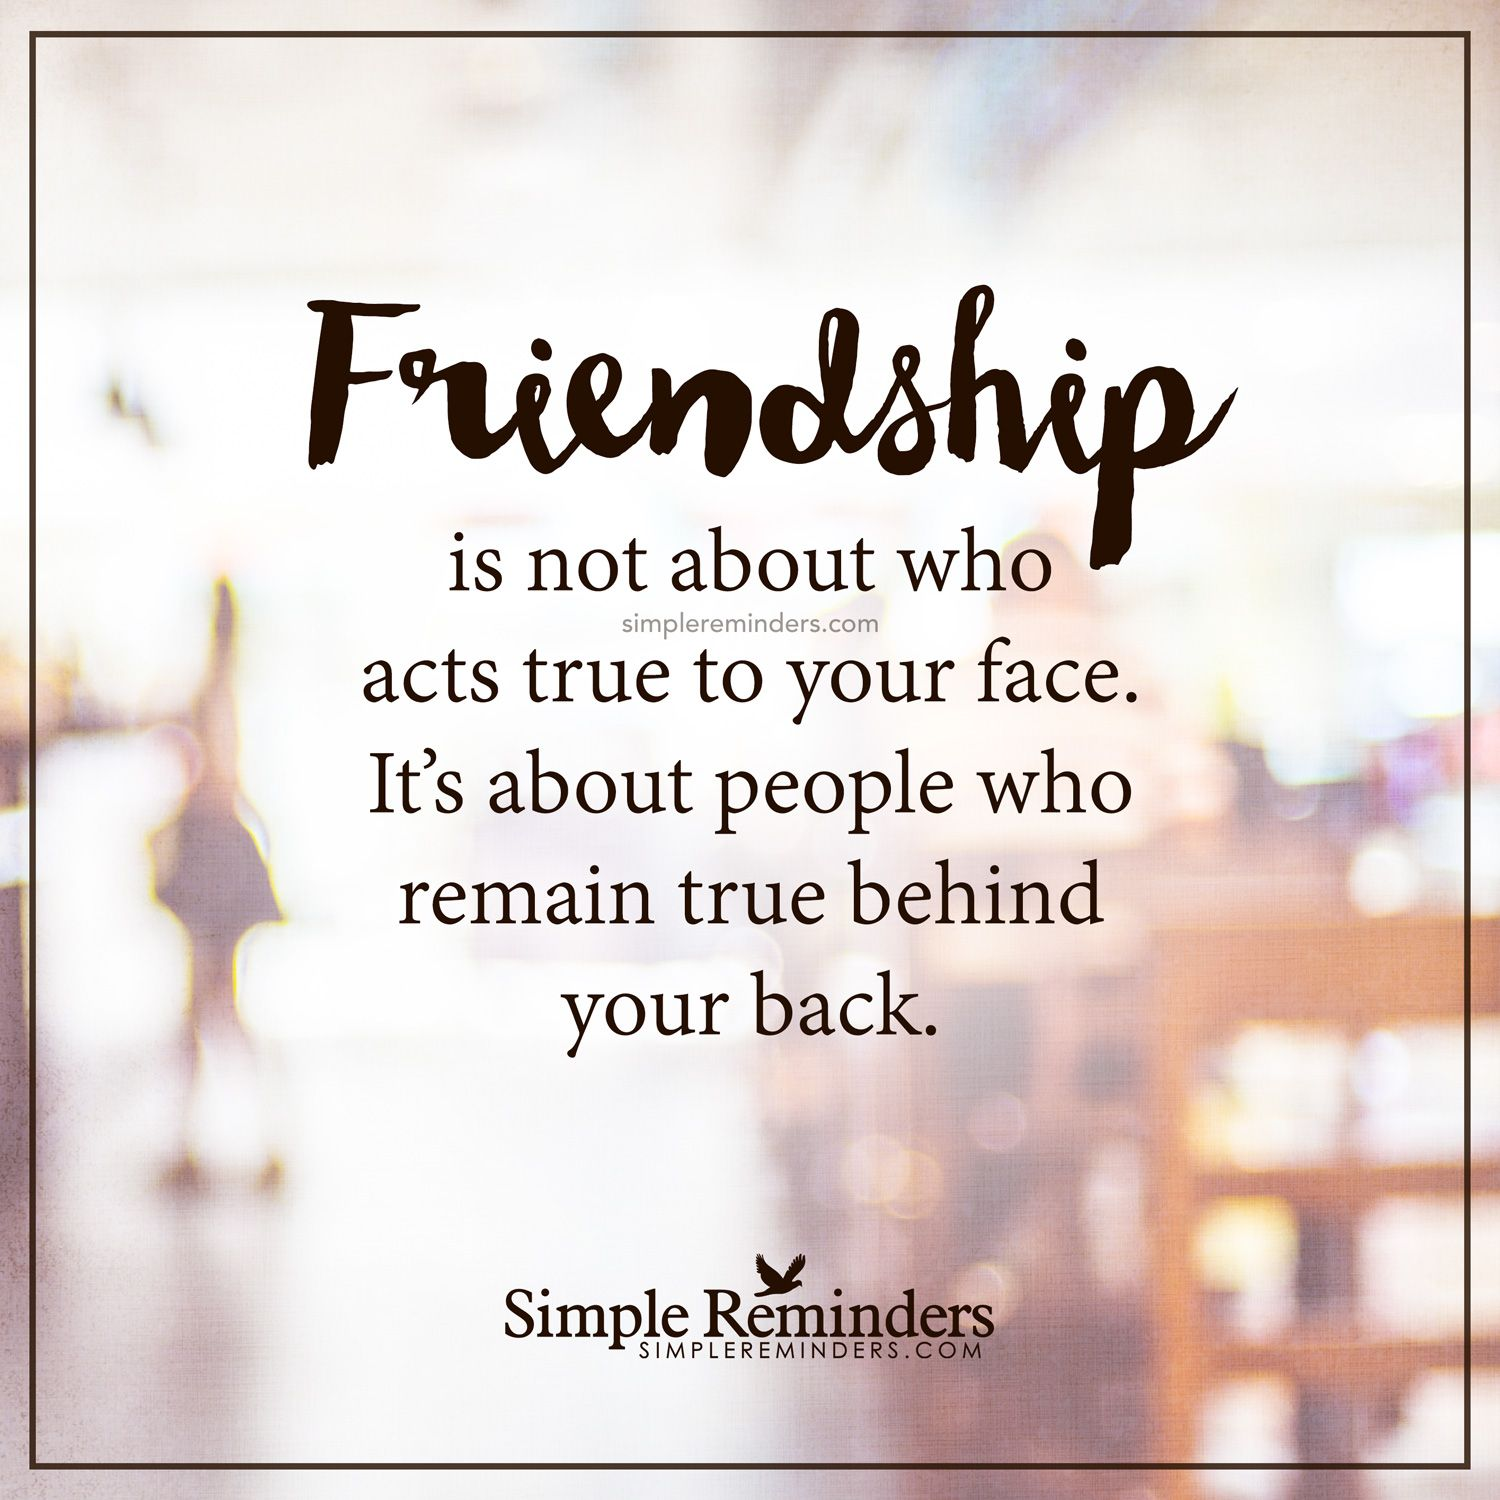 All About Friendship Quotes: Friendship Is Not Friendship Is Not About Who Acts True To